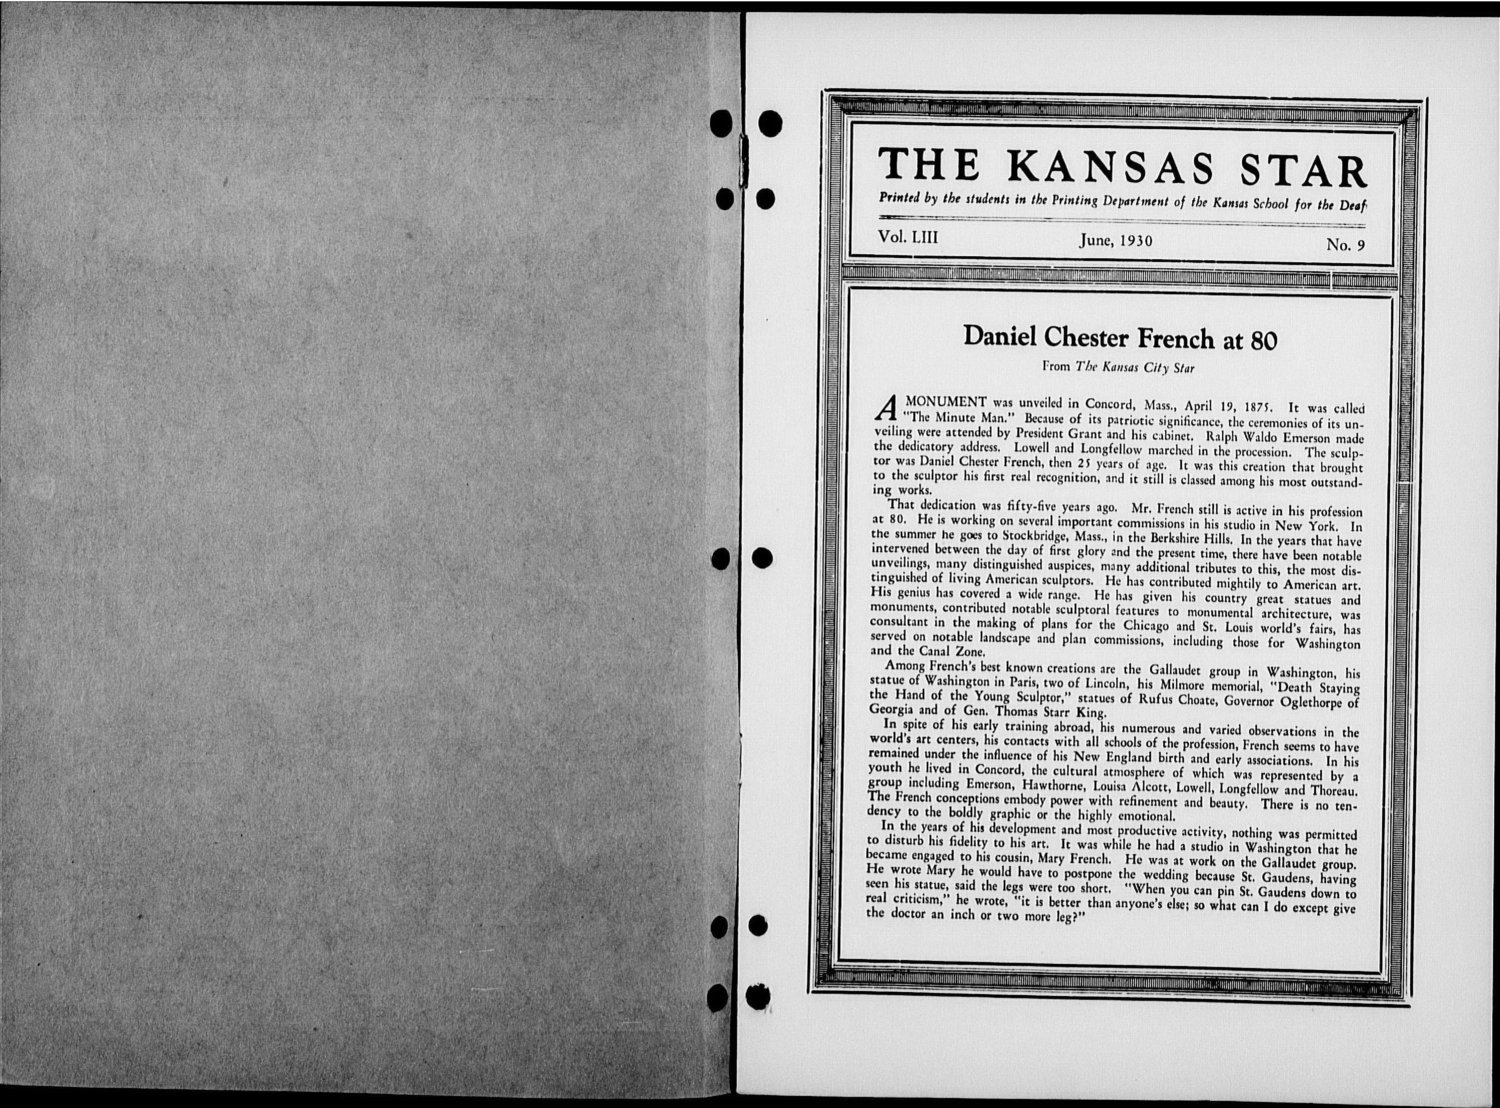 The Kansas Star, volume 53, number 9 - Inside cover-1